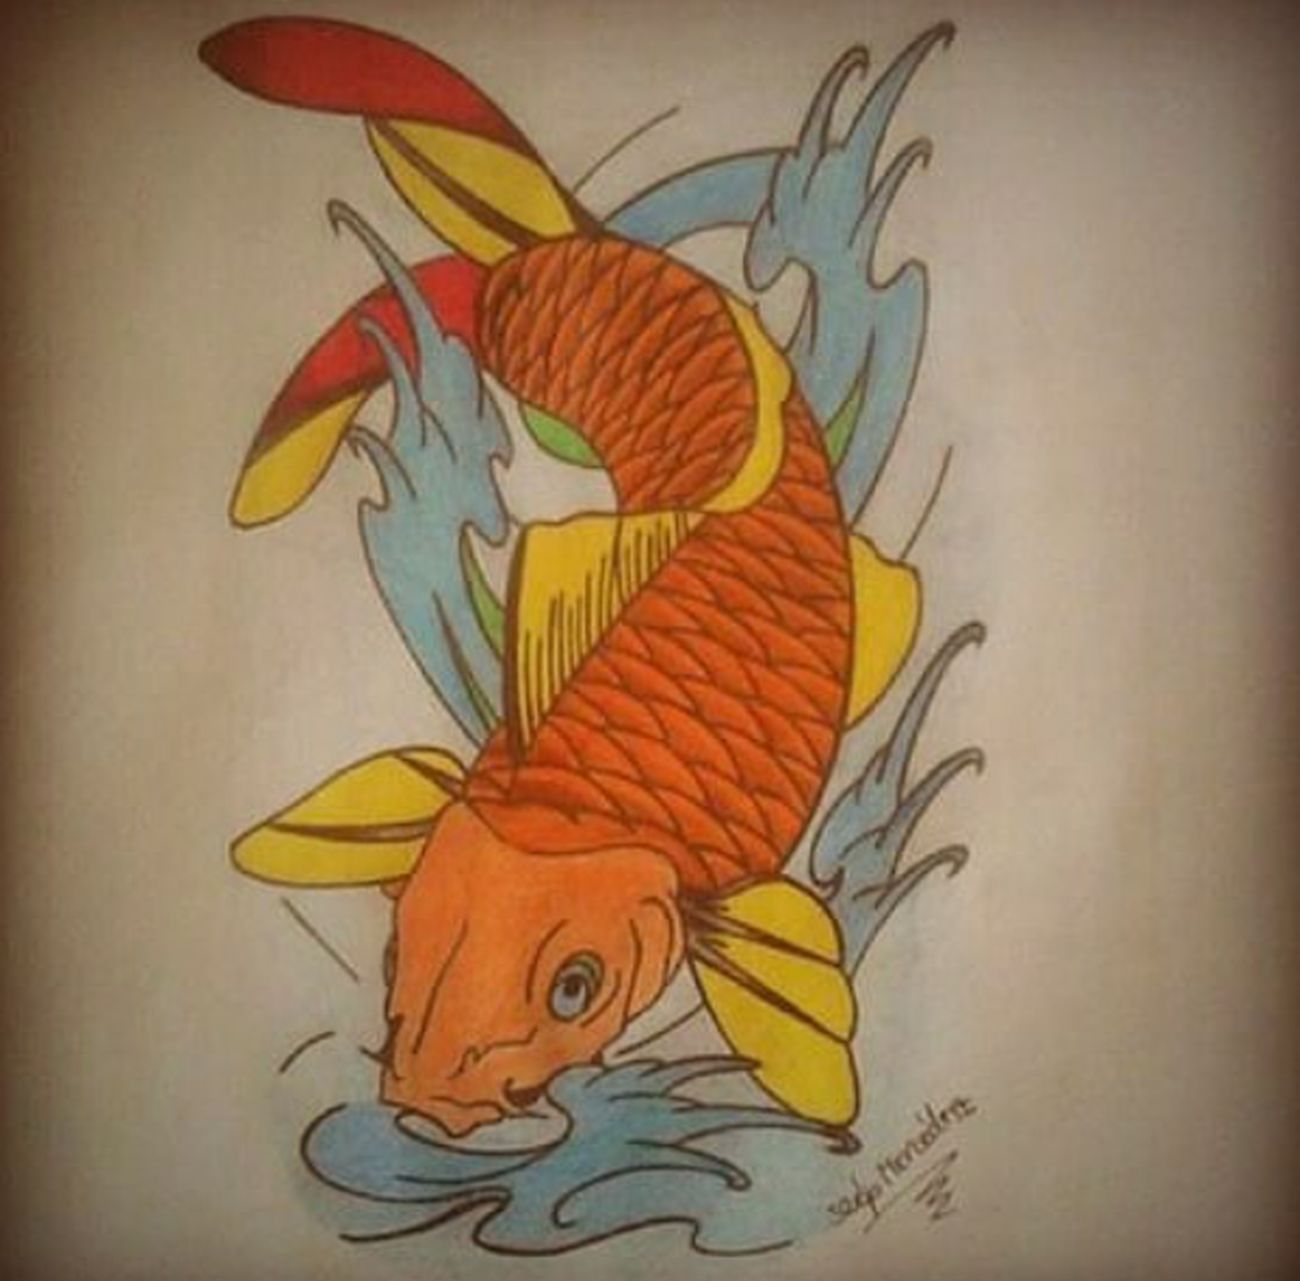 Koi Koi Fish Fish Japanese  Japanese Style Mydraw Hello World Check This Out Tattoo Creative World Picoftheday Drawingtime Drawing Draw Drawings Creative Art, Drawing, Creativity ArtWork Art Arts Follow4follow Likeforlike Design Tattoodesign Tattoo ❤